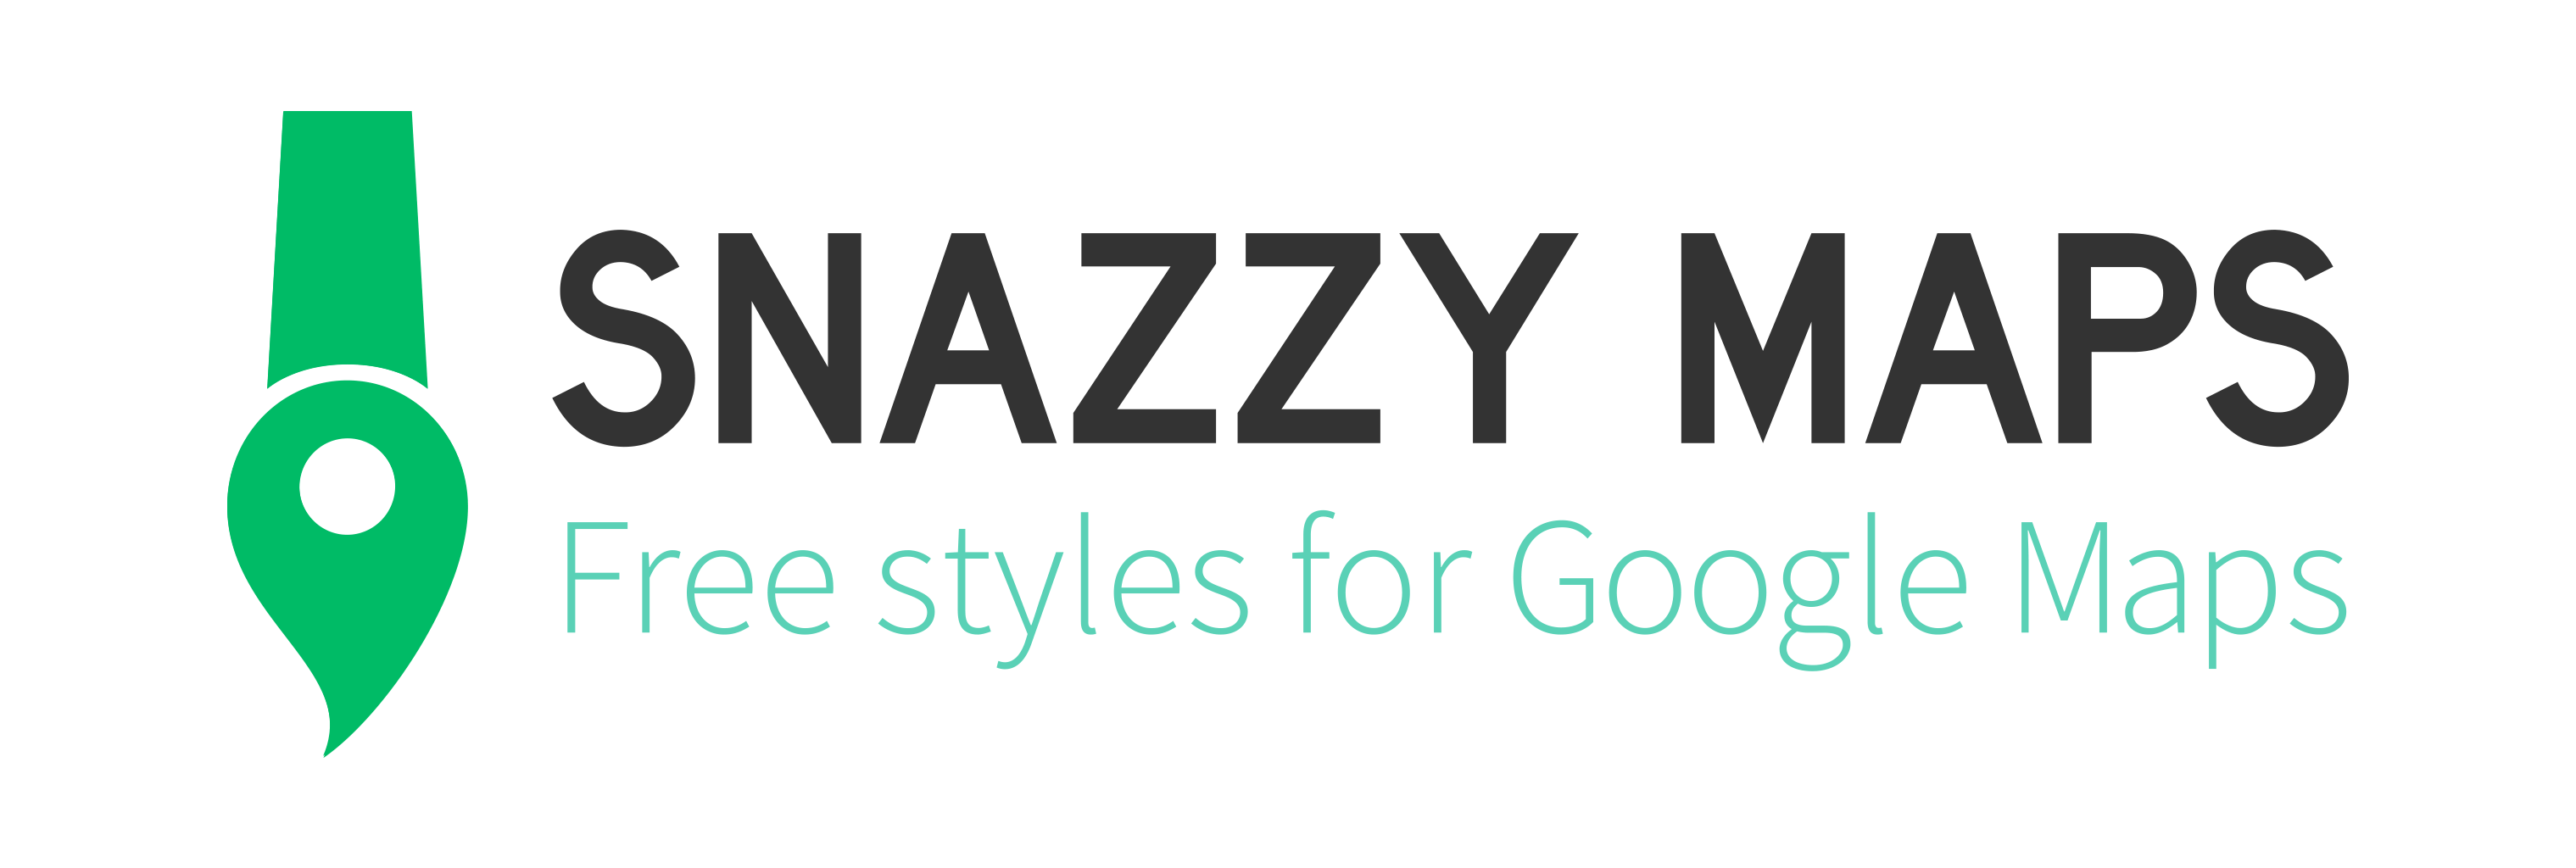 Press Snazzy Maps Free Styles For Google Maps